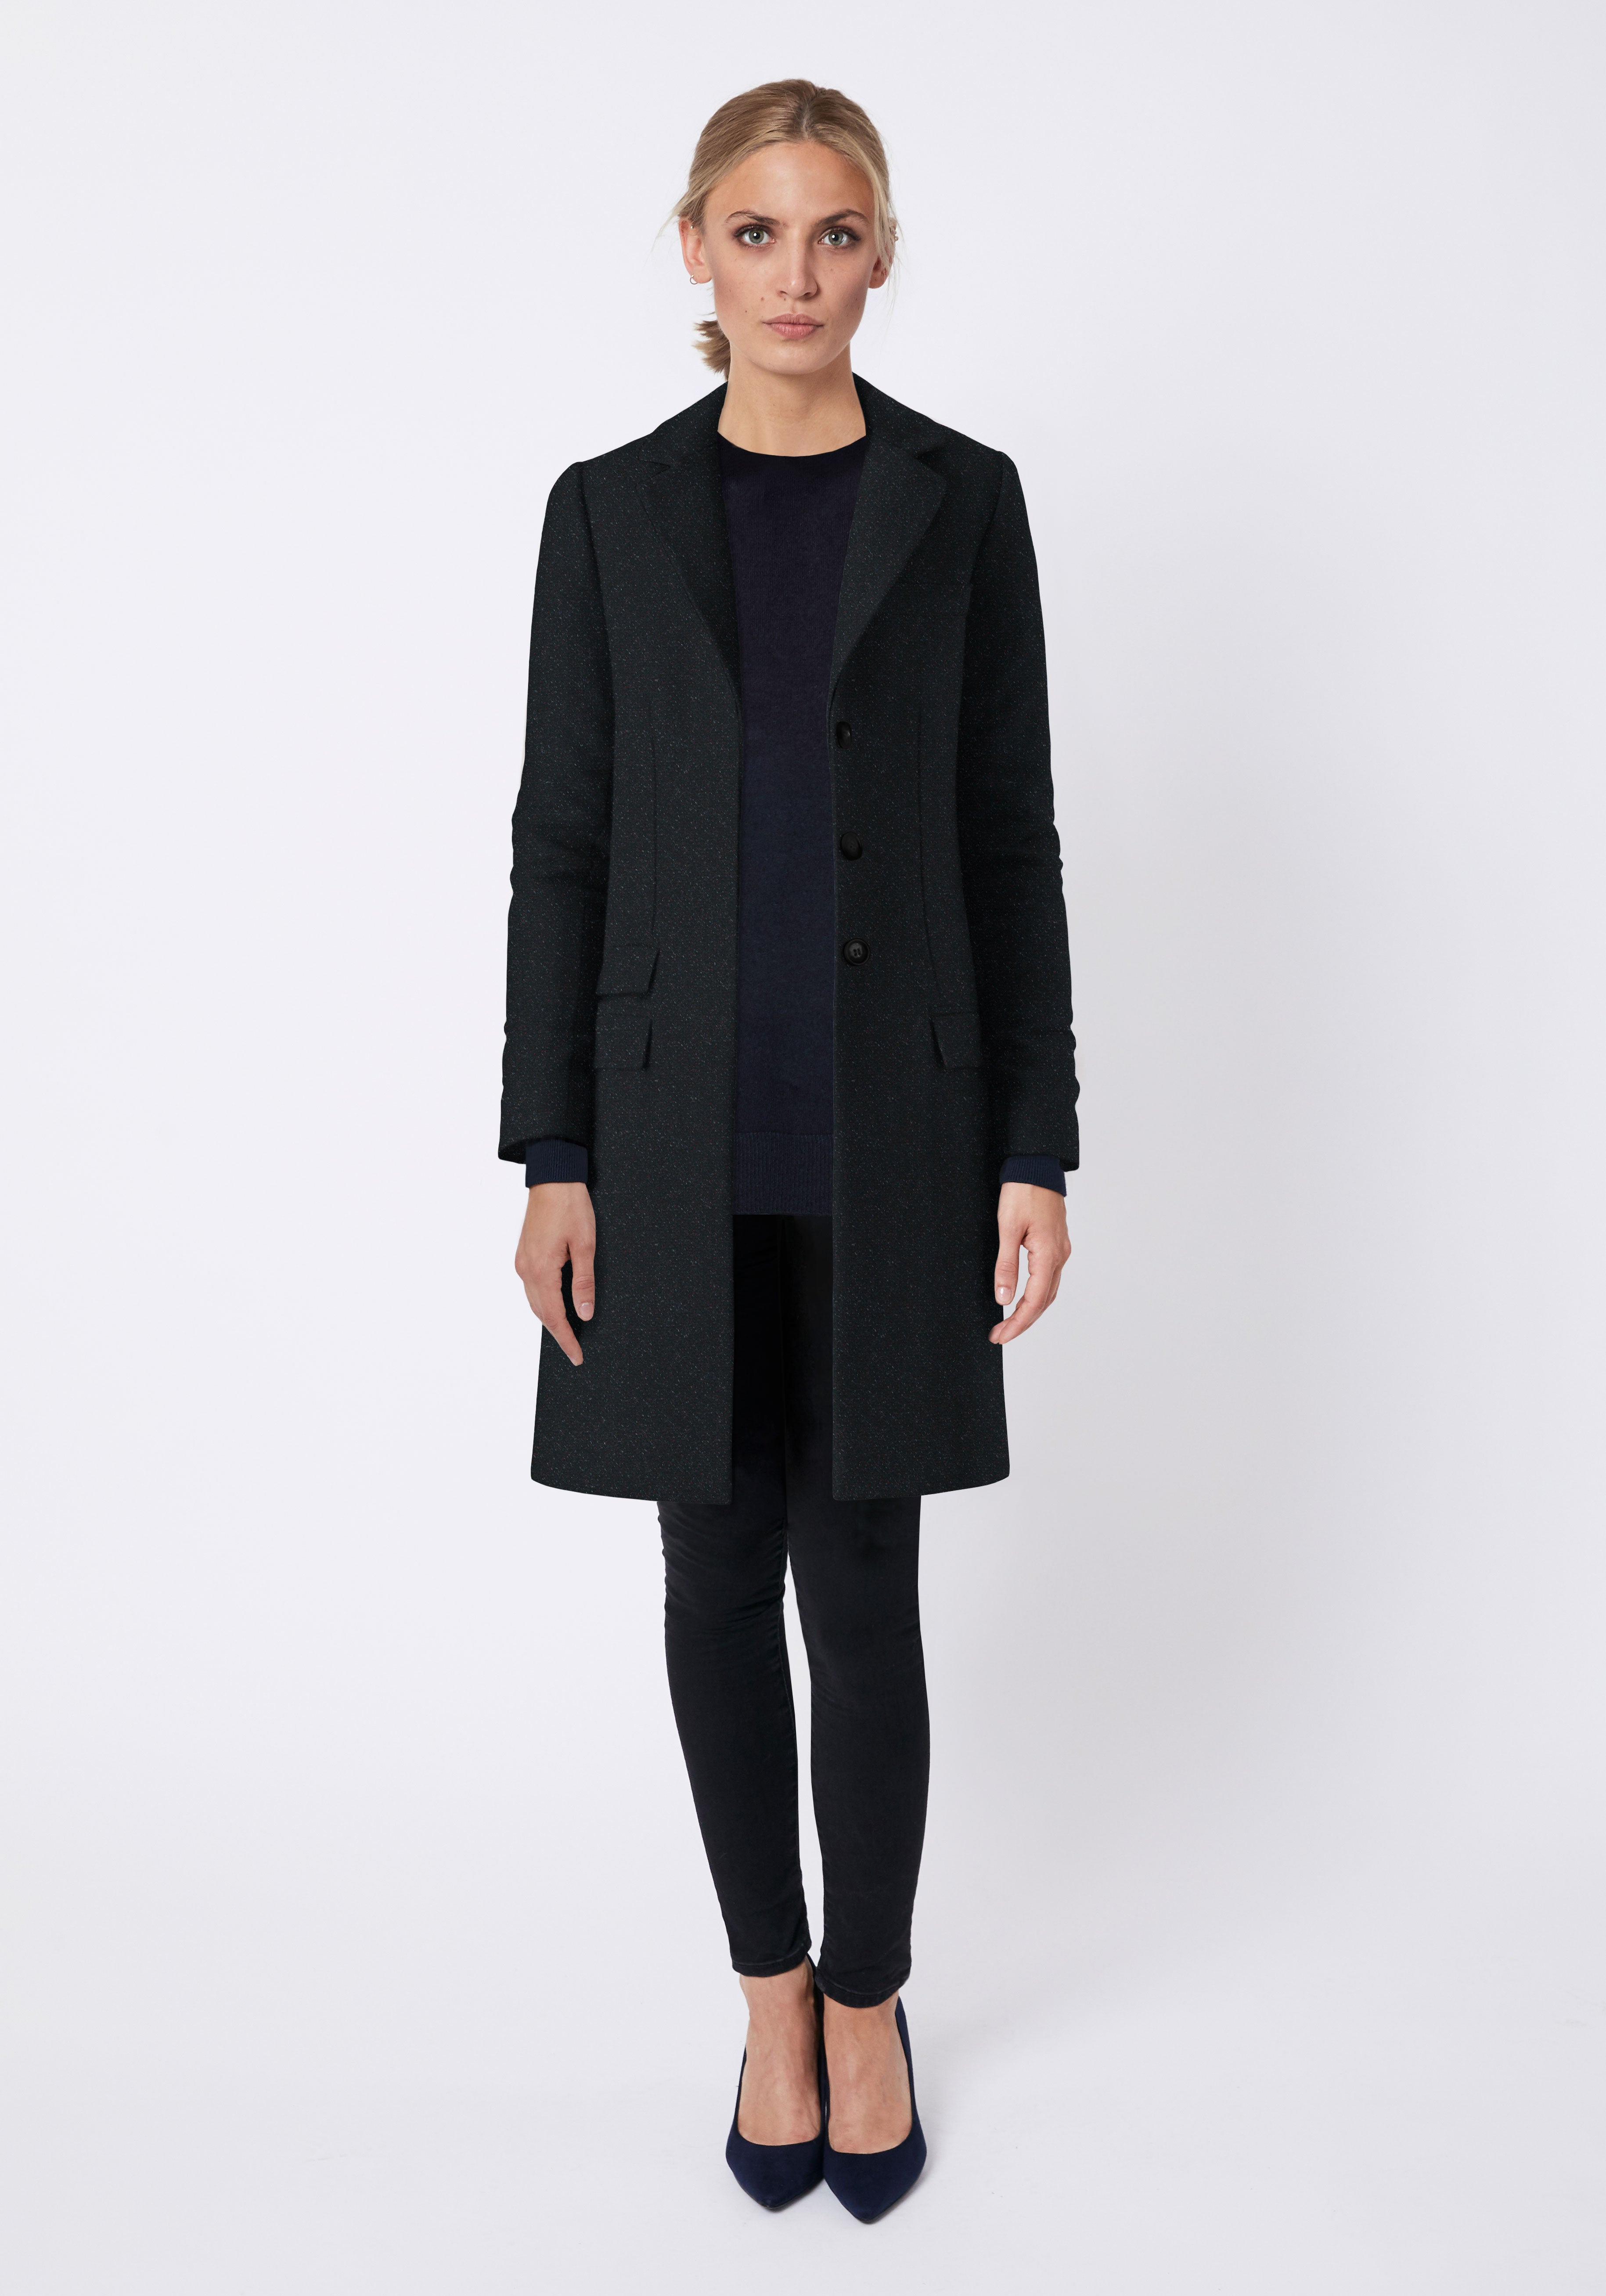 Nelson Coat in Black with Red Fleck